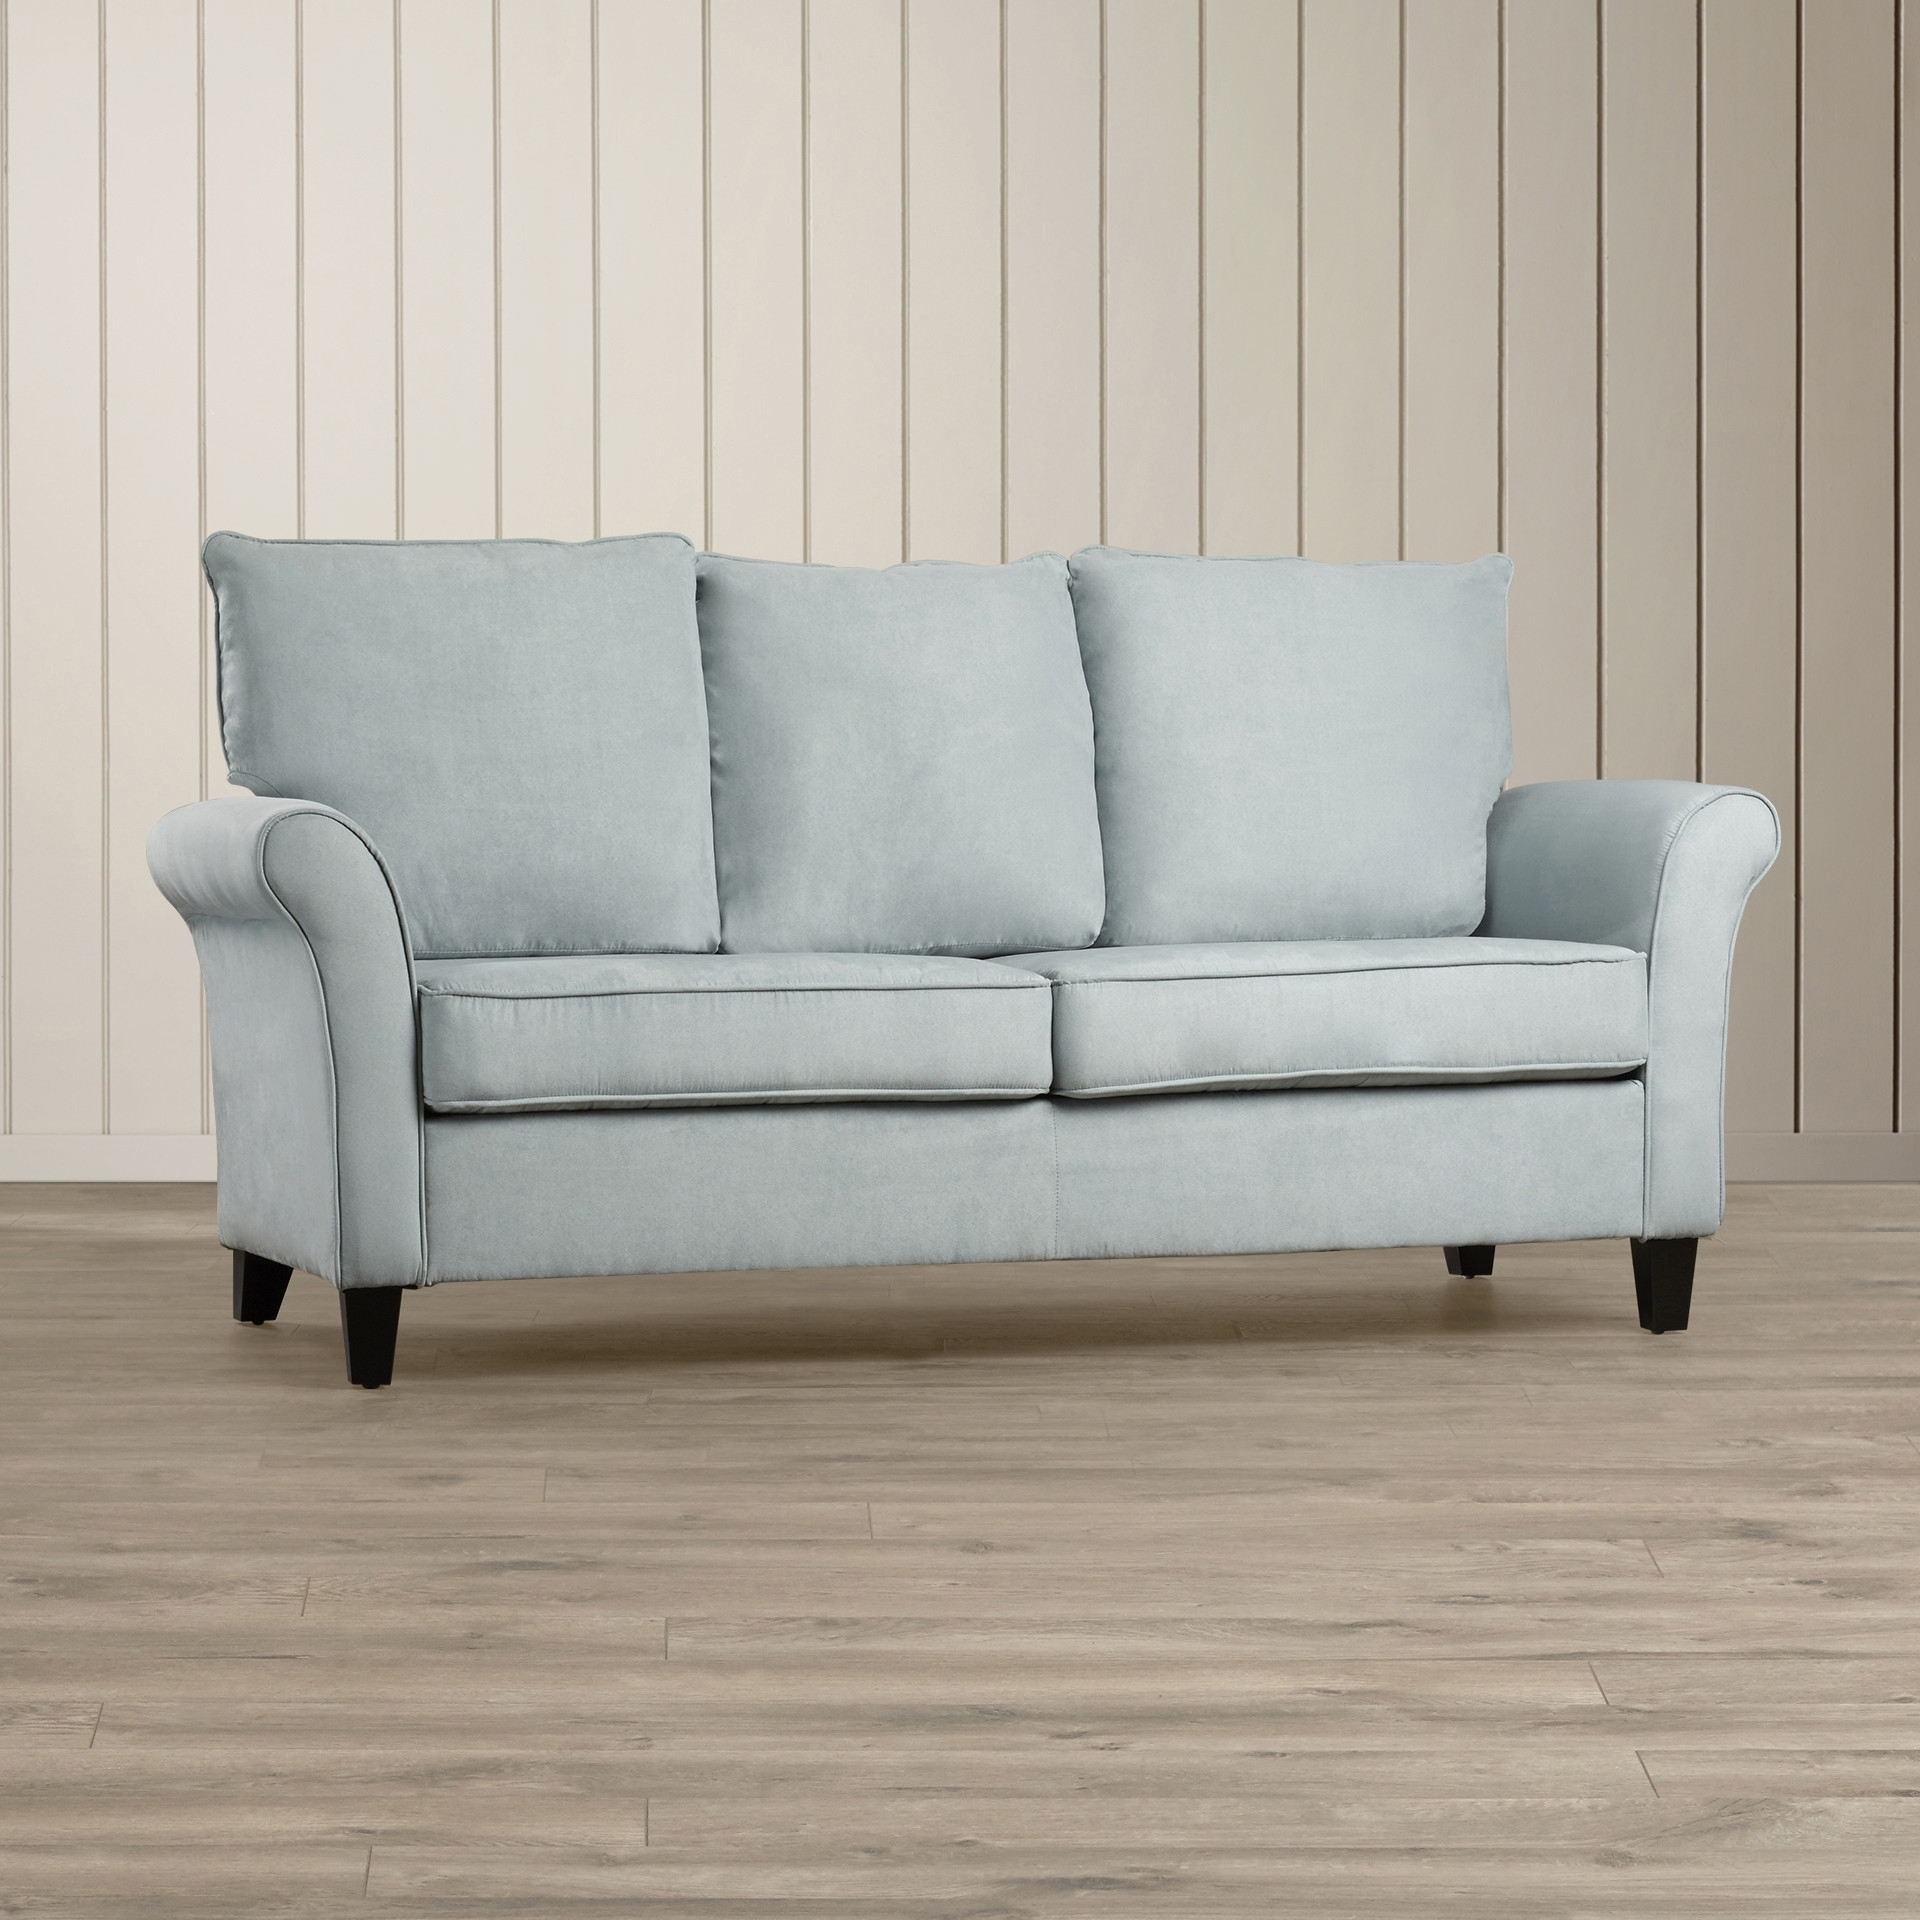 Widely Used Marvelous Wayfair Sofa About Fancy Wayfair Sofa 83 On Sofas And Pertaining To Fancy Sofas (View 11 of 20)